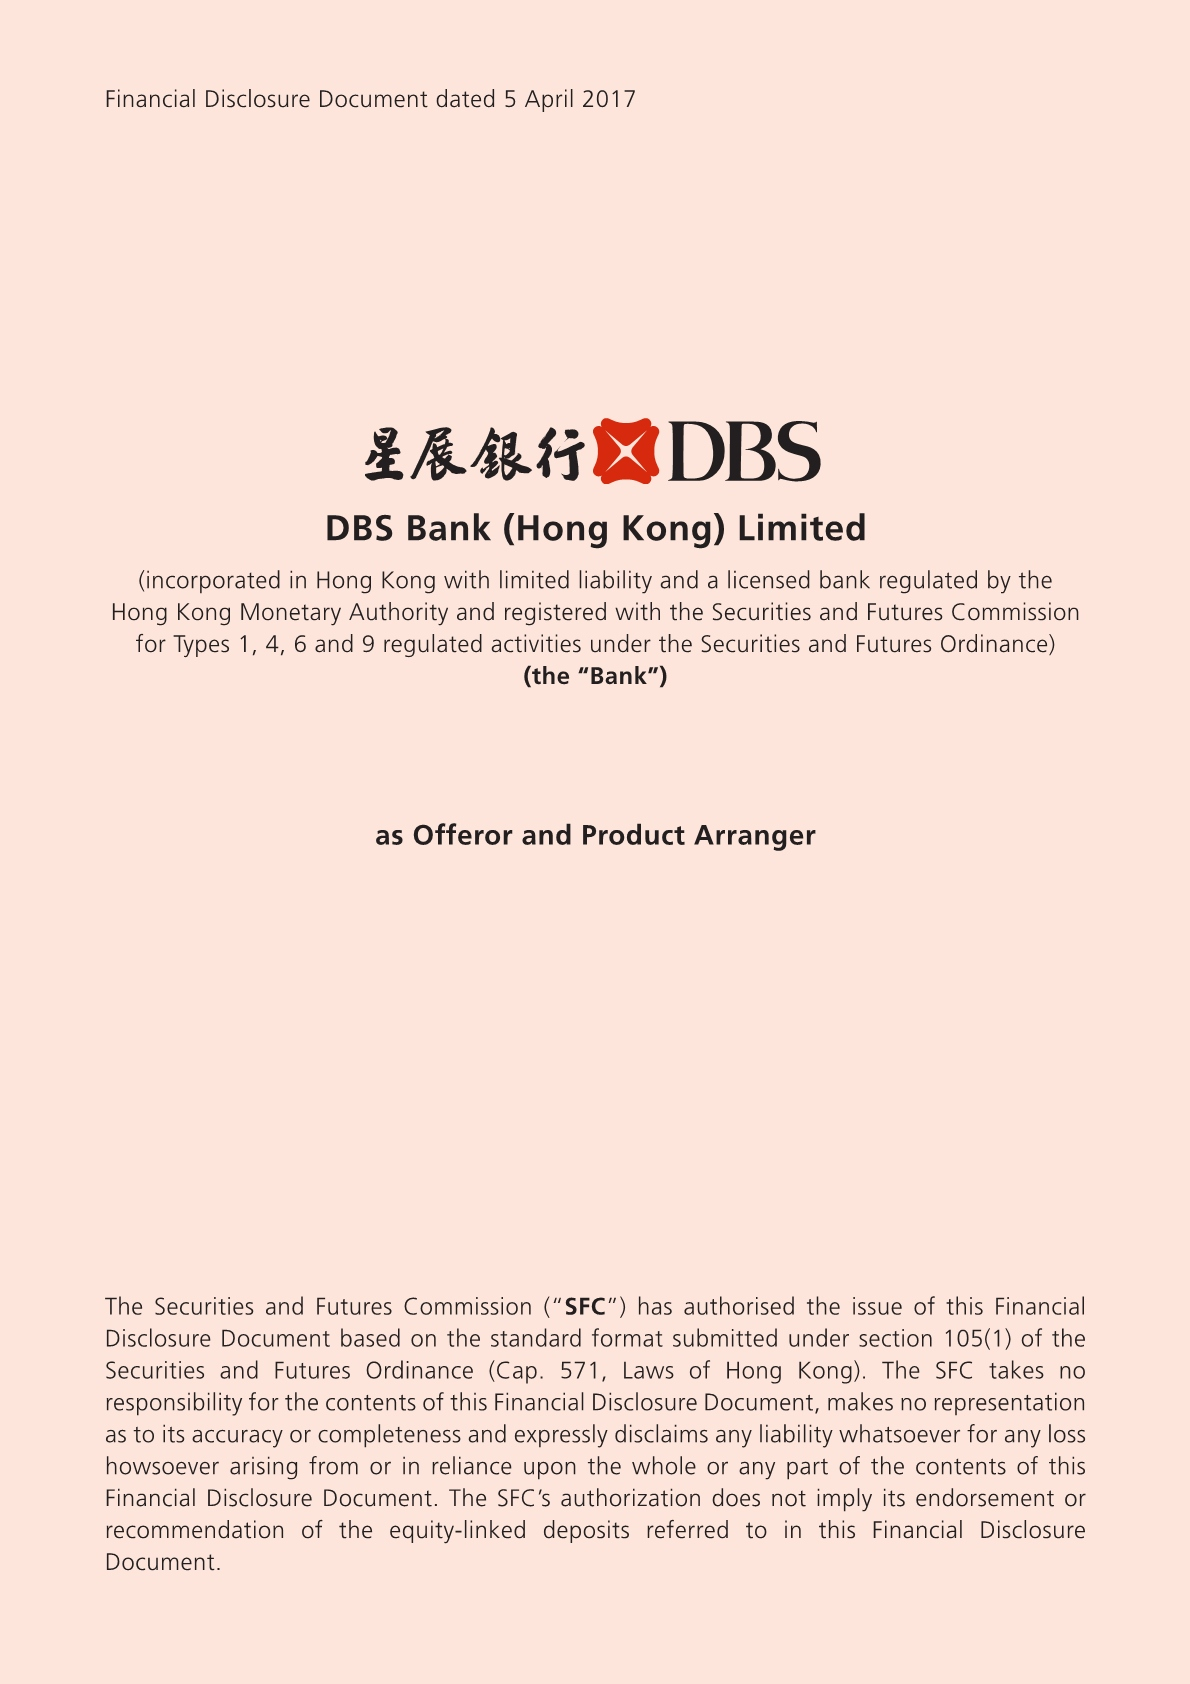 DBS Bank (Hong Kong) Limited – Financial Disclosure Document